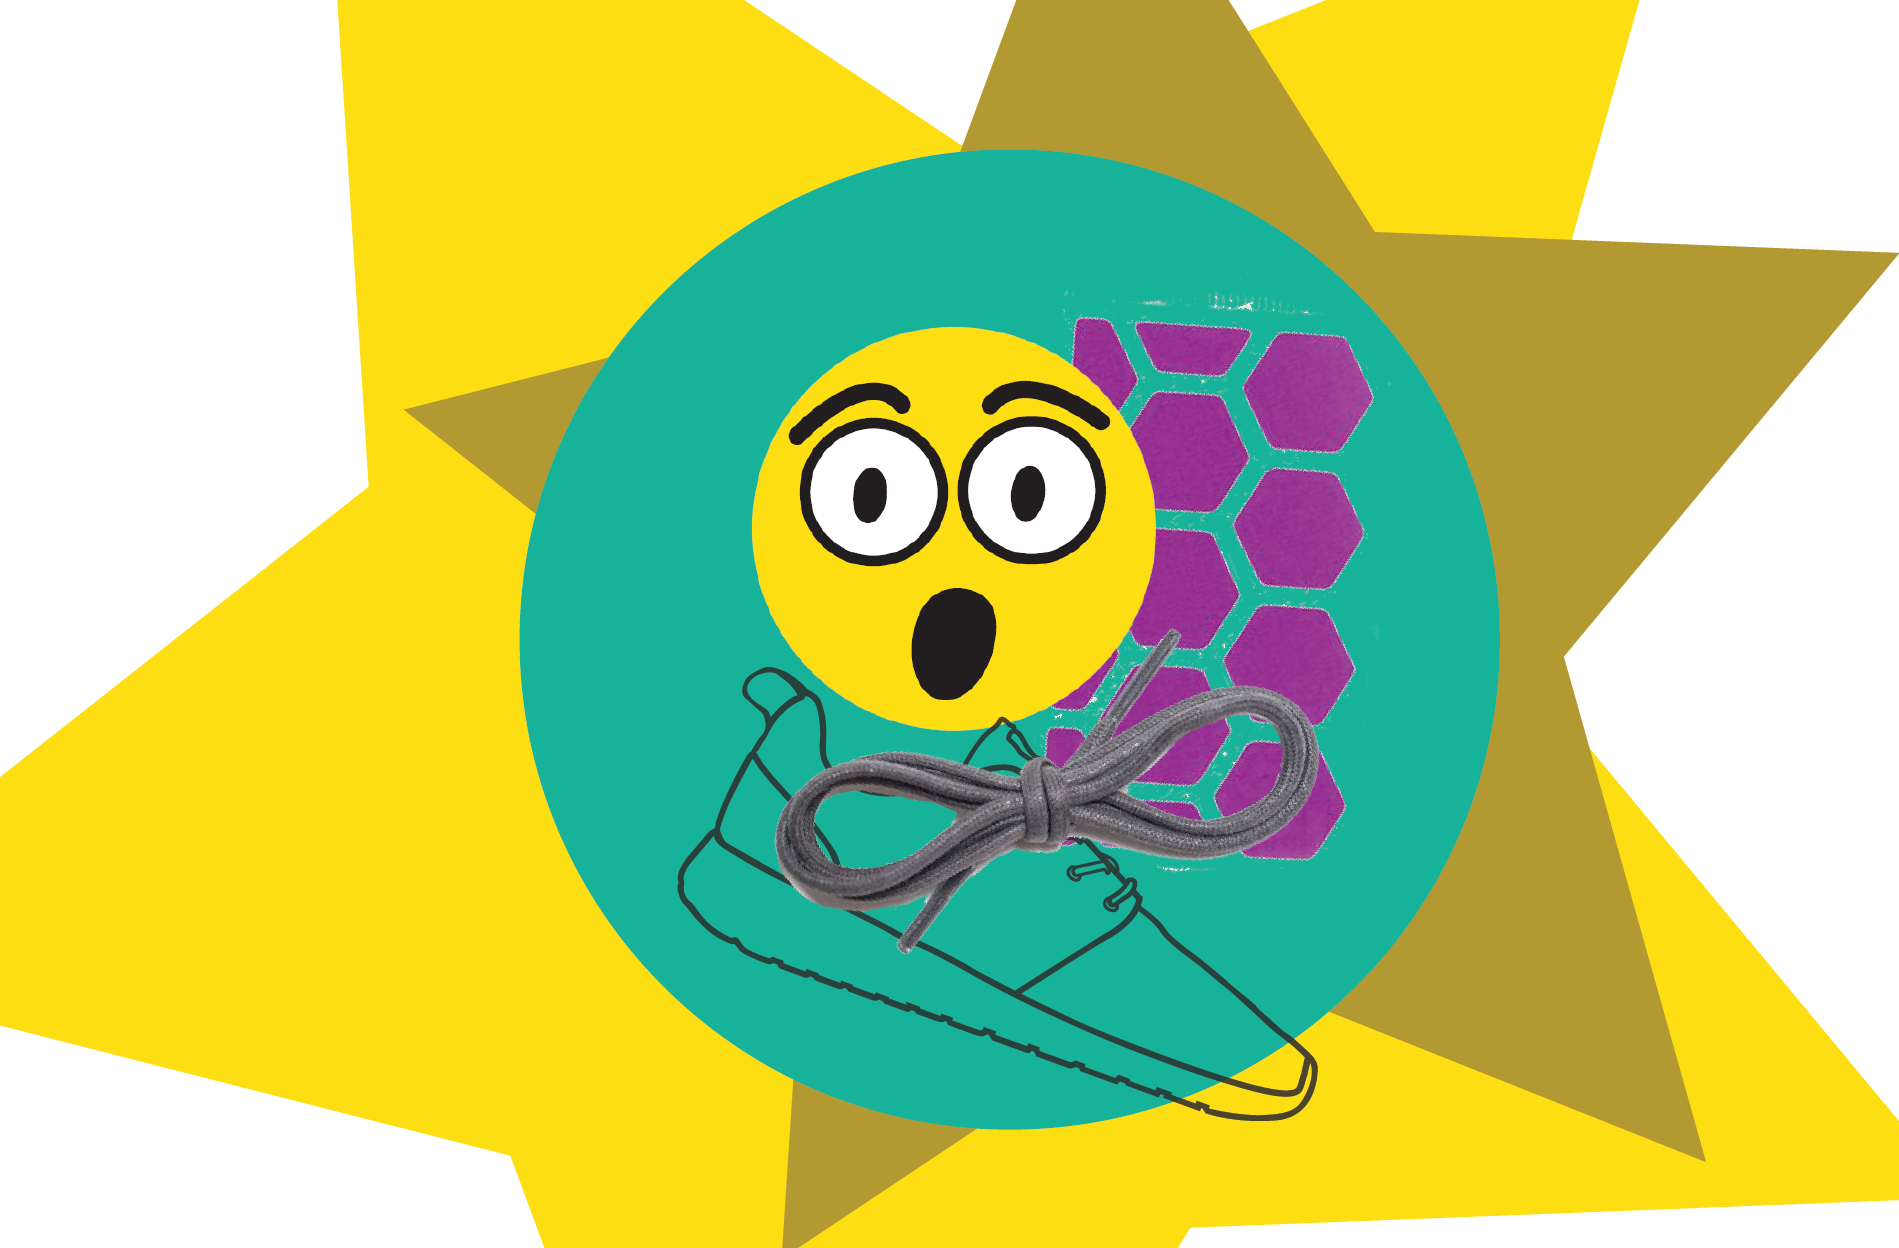 Drawings of a shoe outline with shoelaces, a surprised yellow emoji face, and purple reflective stickers in a hexagon shape